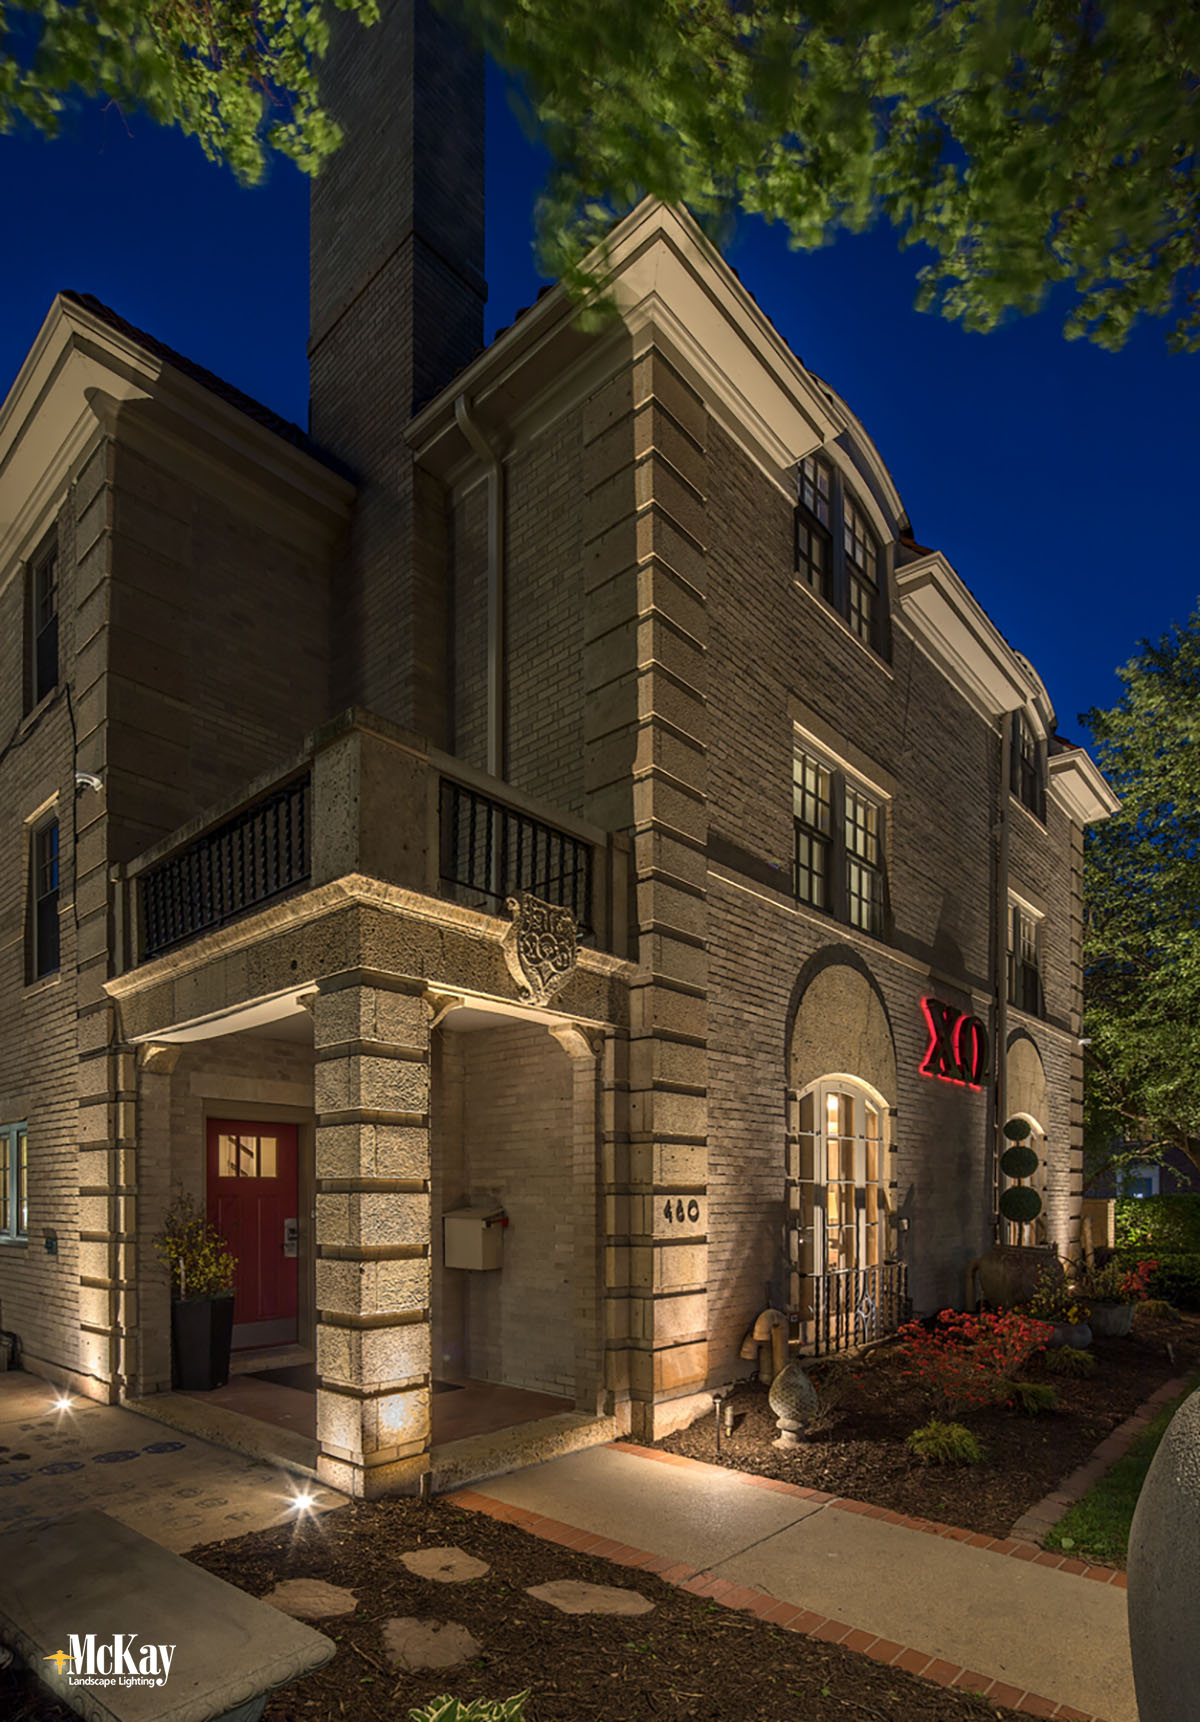 College Sorority Outdoor Architectural Lighting Lincoln Nebraska McKay Landscape Lighting CHI 05